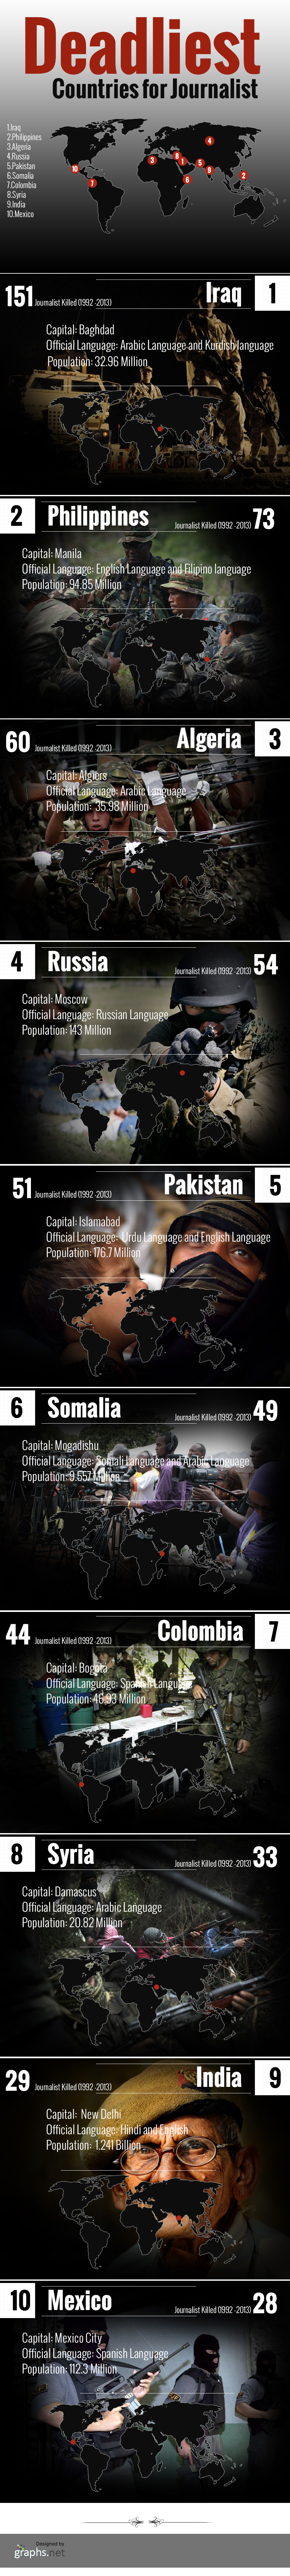 Most Deadliest Countries For Journalists